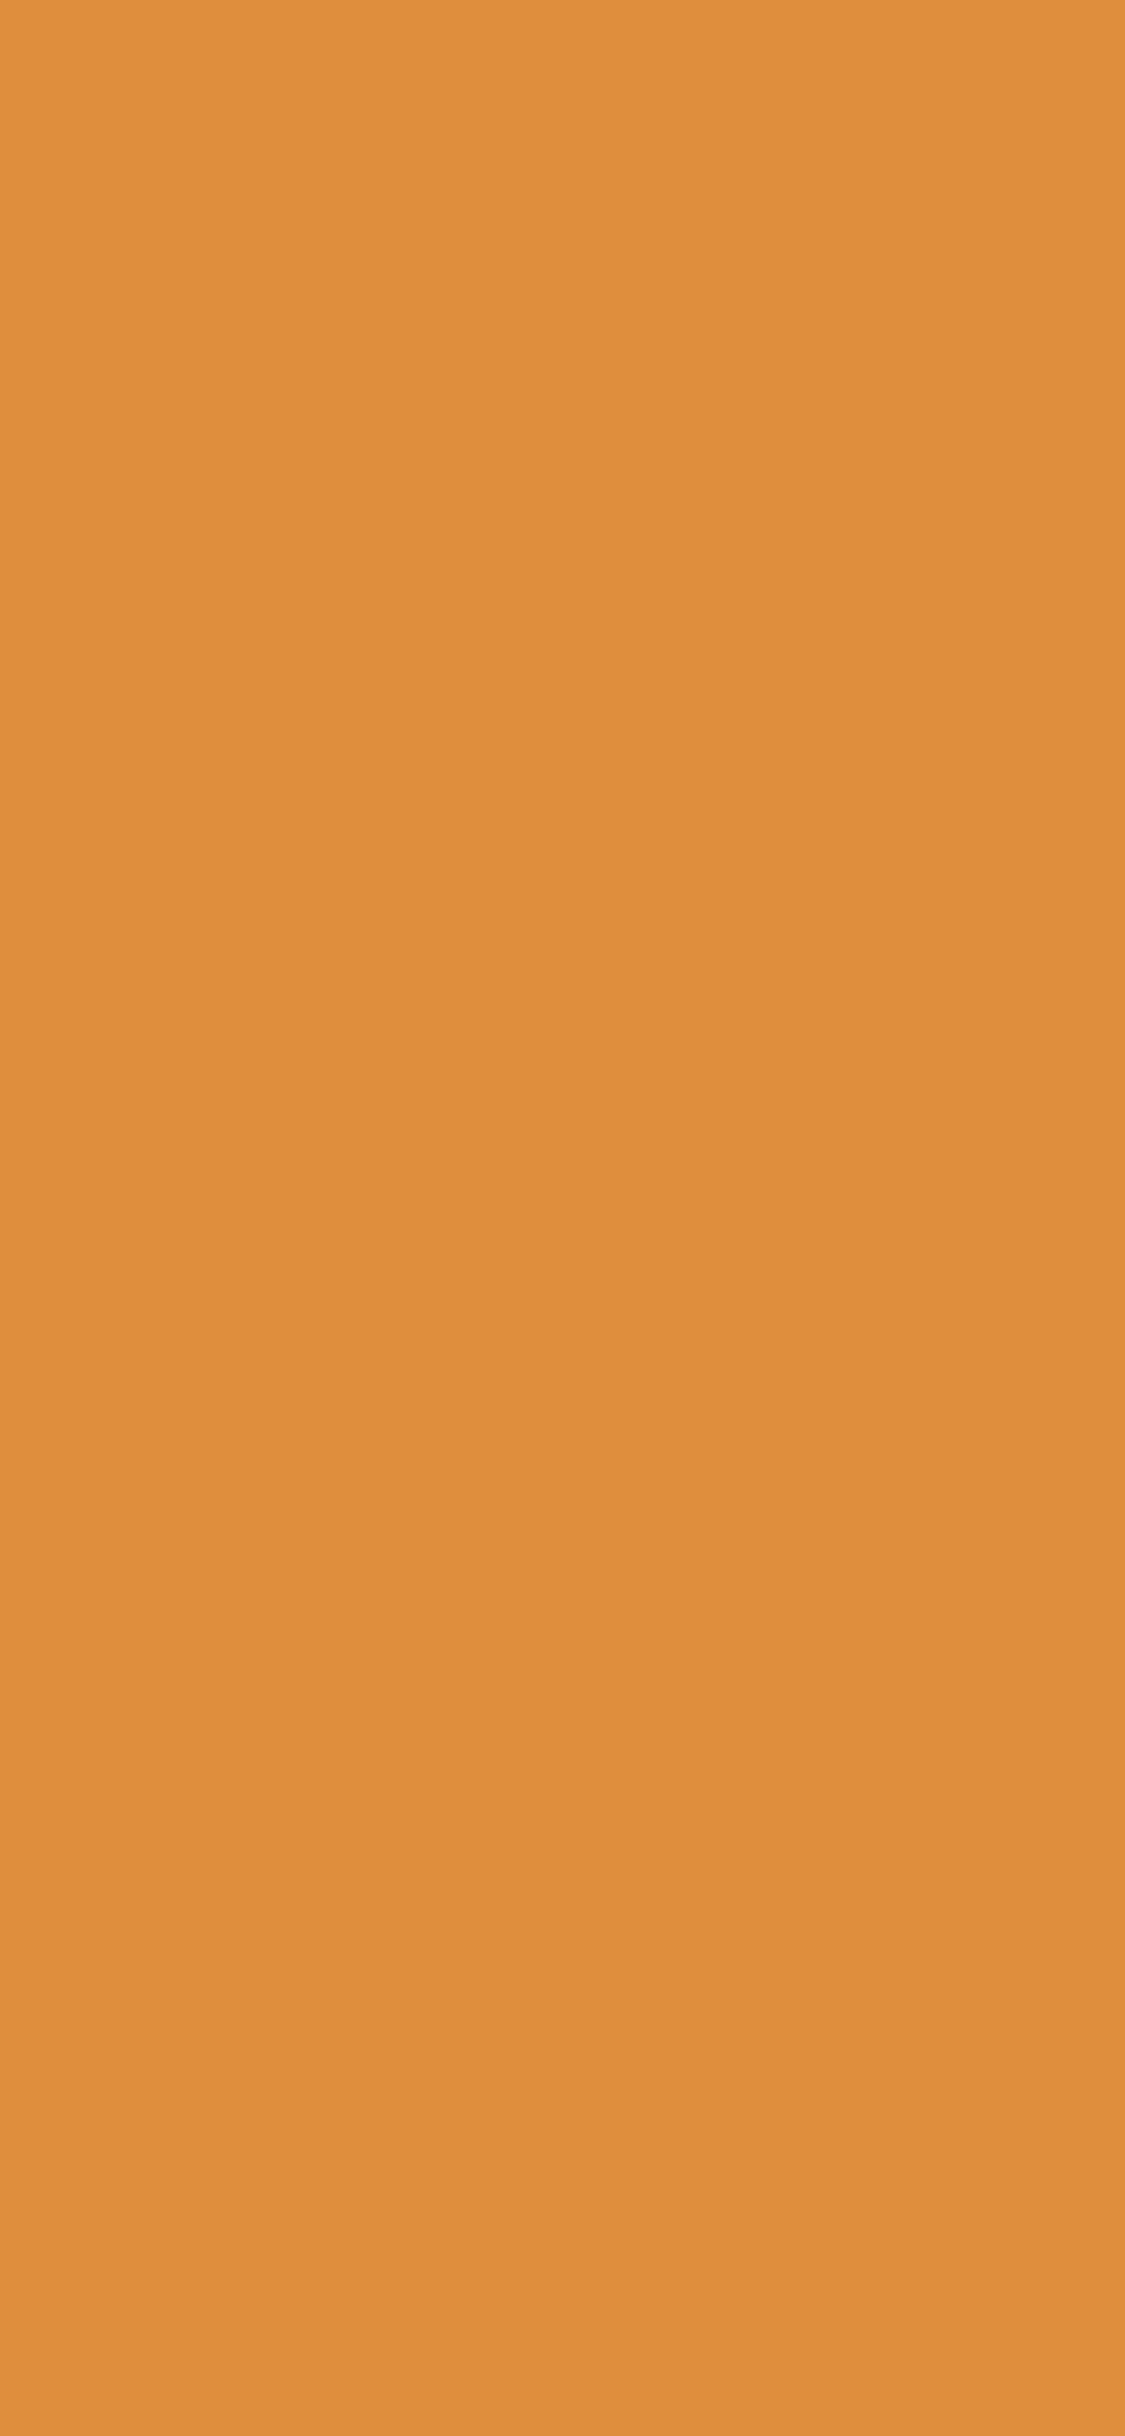 1125x2436 Tigers Eye Solid Color Background